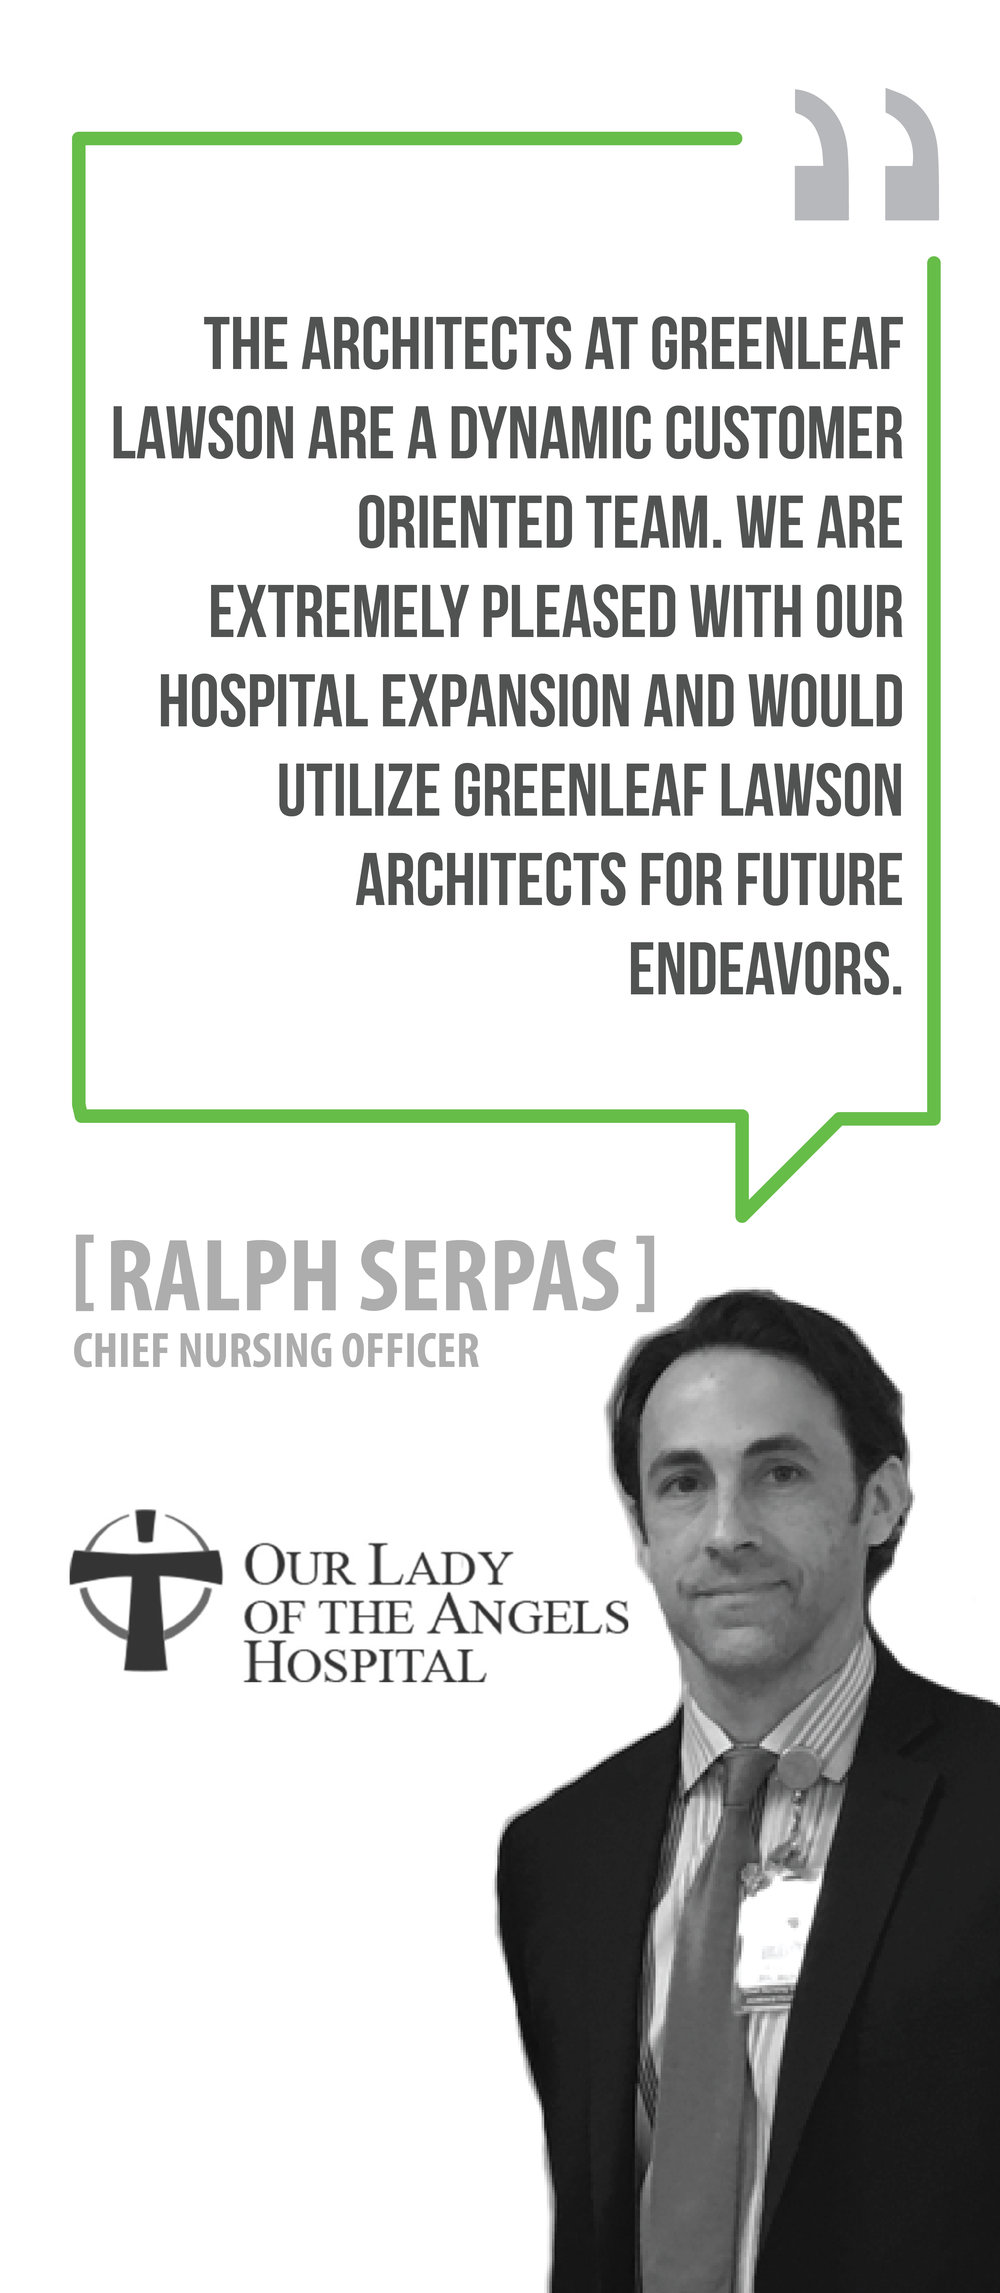 Greenleaf_Lawson_Architects-Testimonials-Vertical-02.jpg